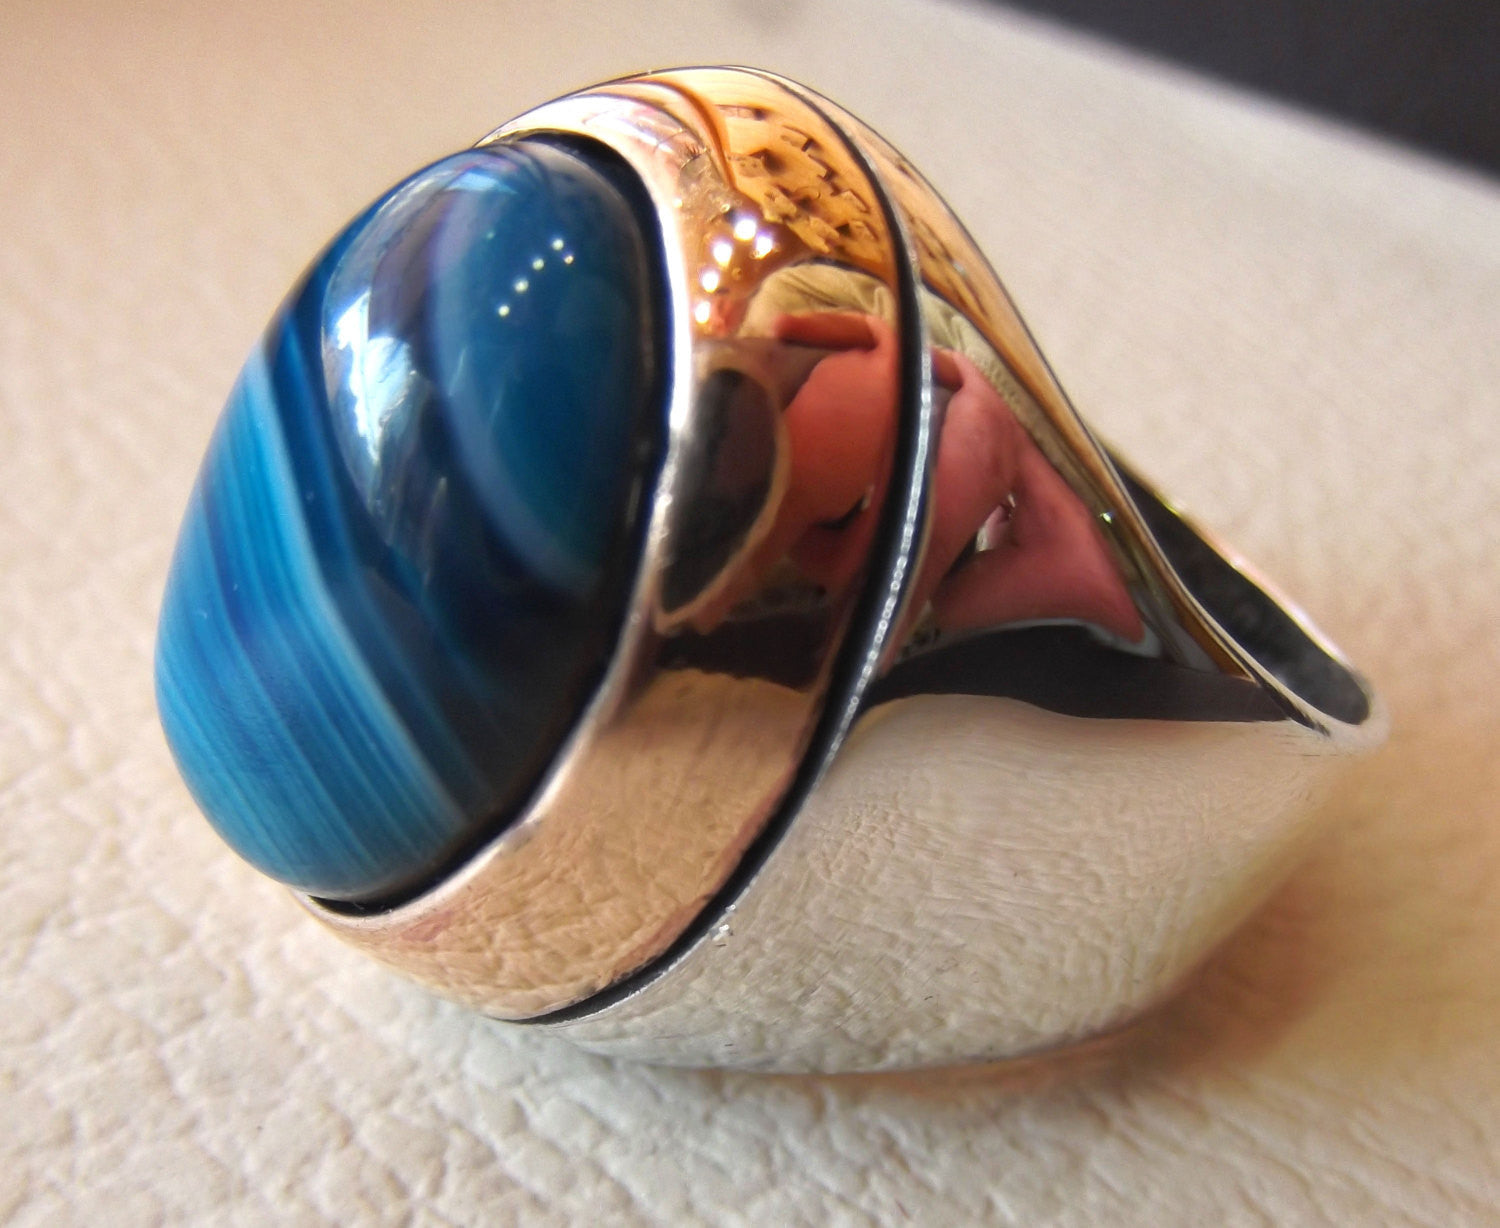 blue agate striped oval cabochon huge man ring sterling silver 925 bronze frame all sizes two tone jewelry arabic middle eastern style